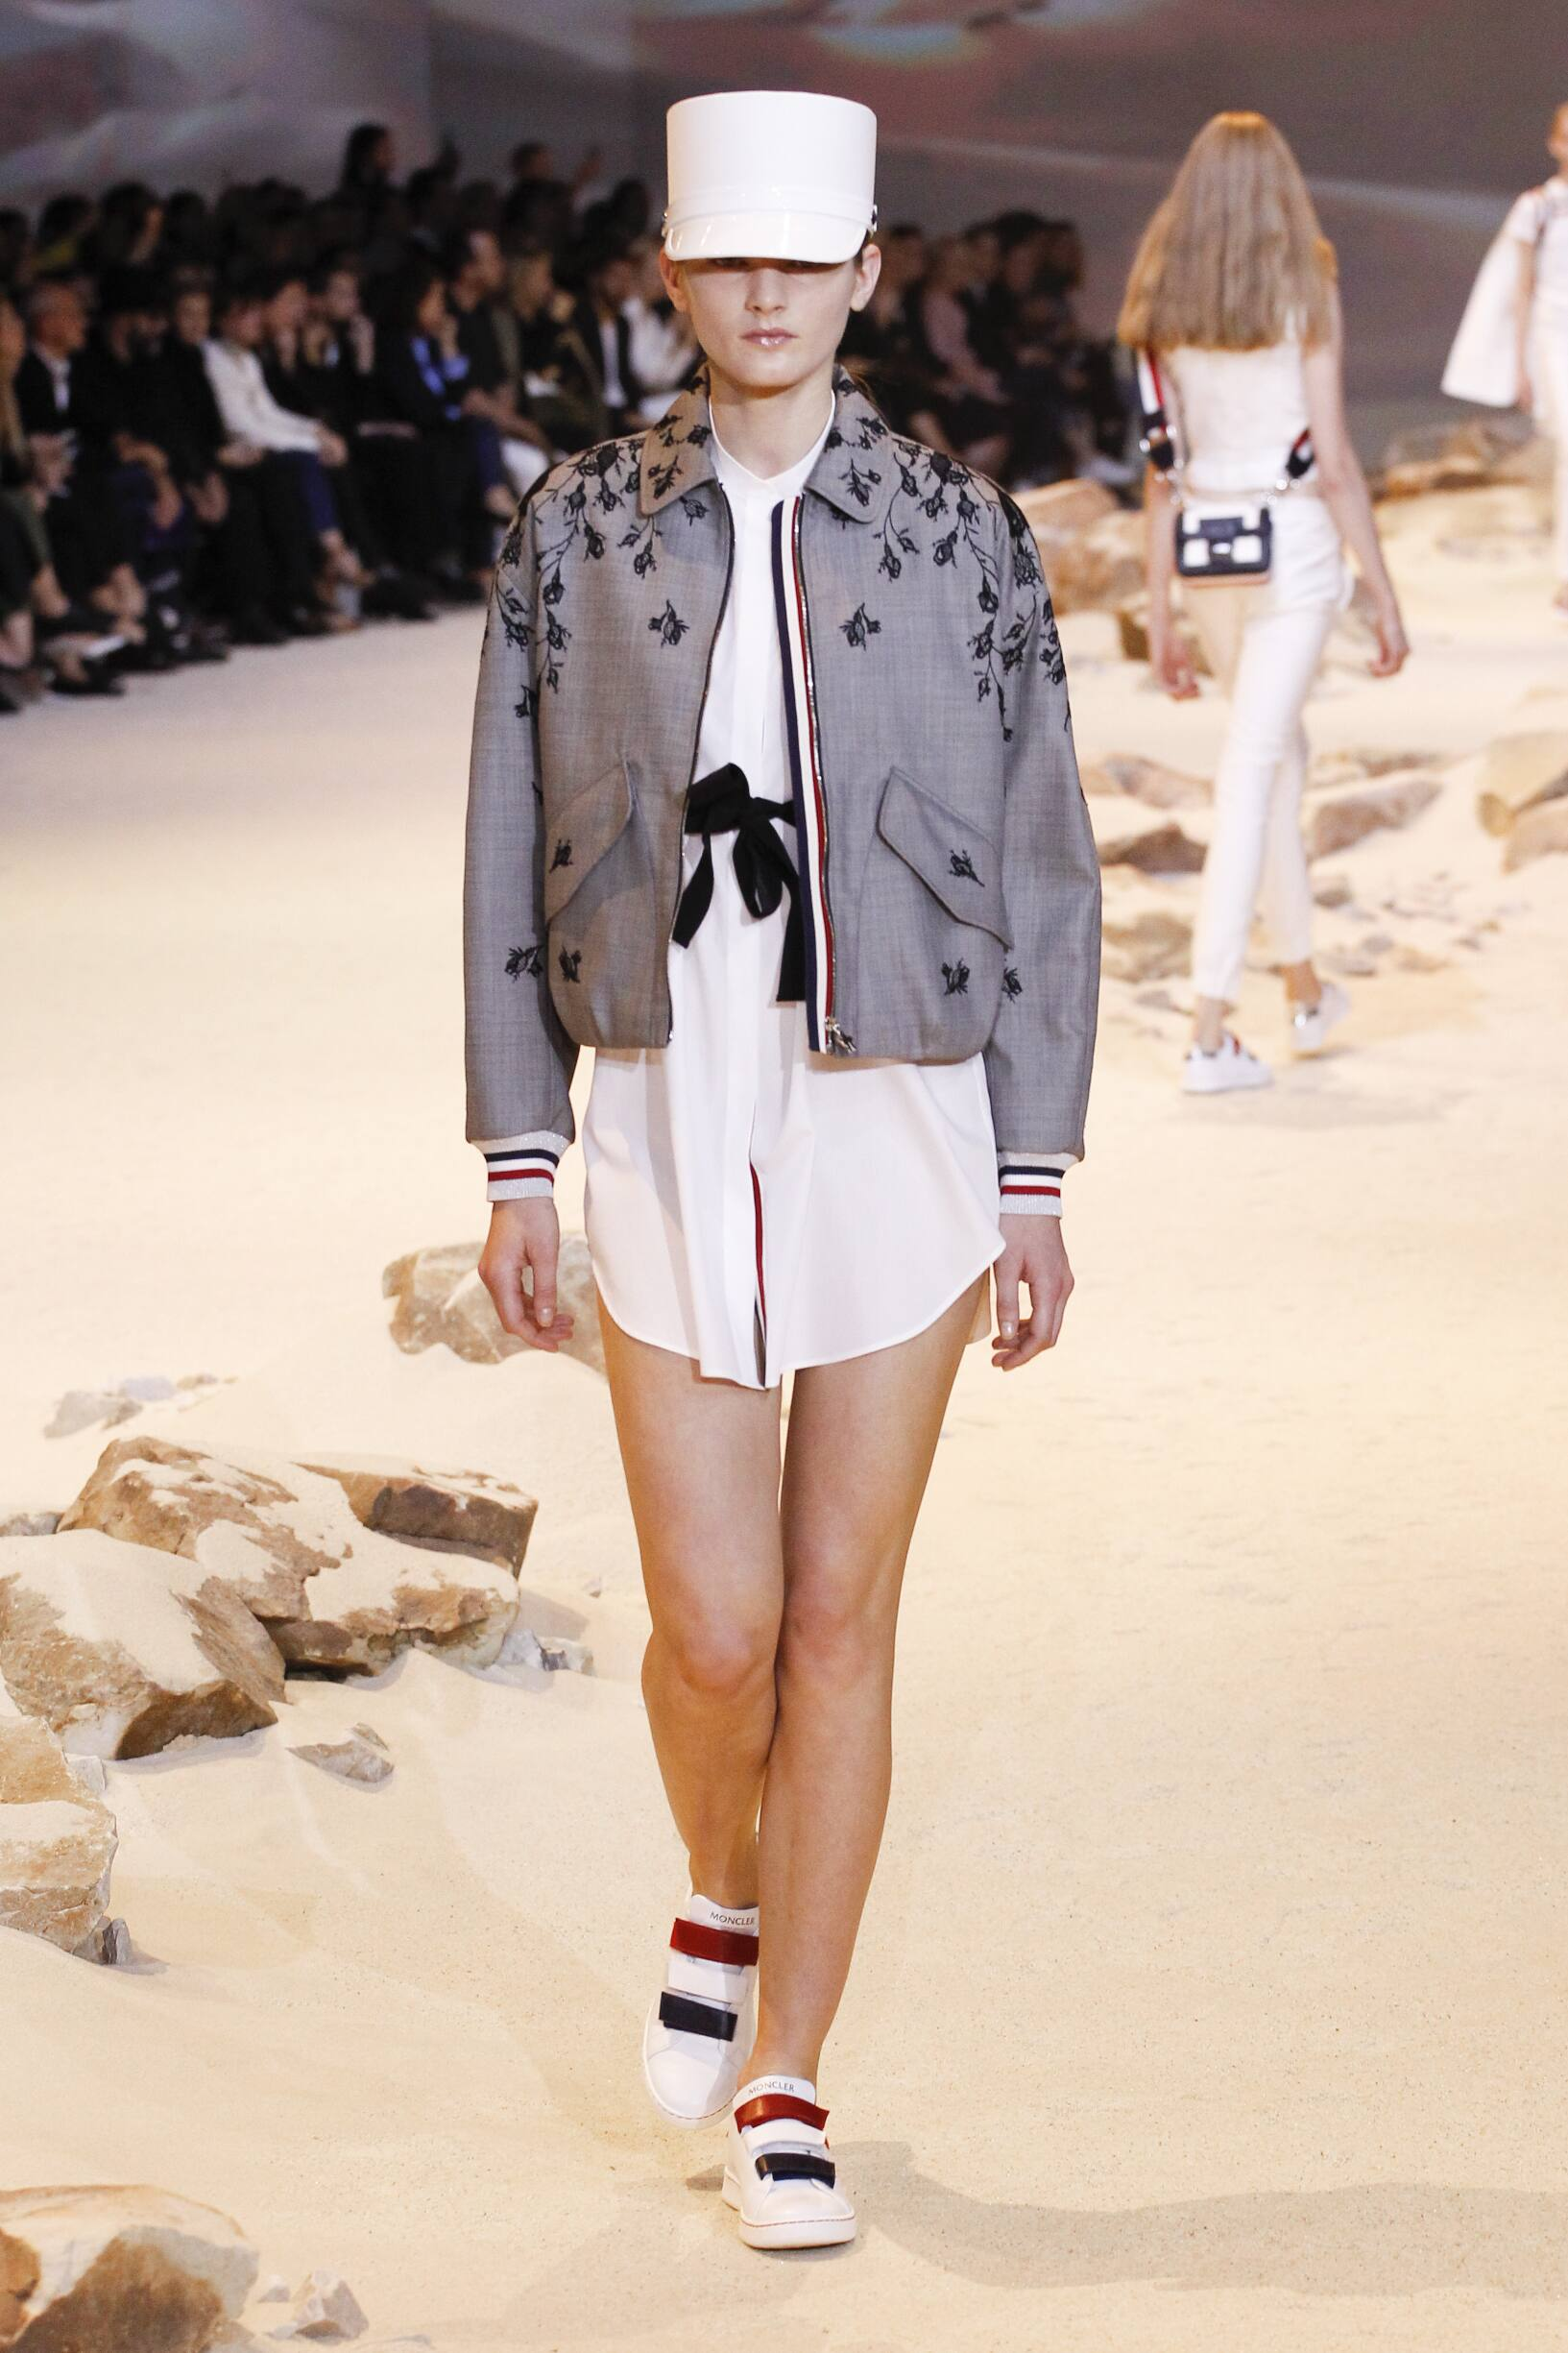 Model Fashion Show Moncler Gamme Rouge